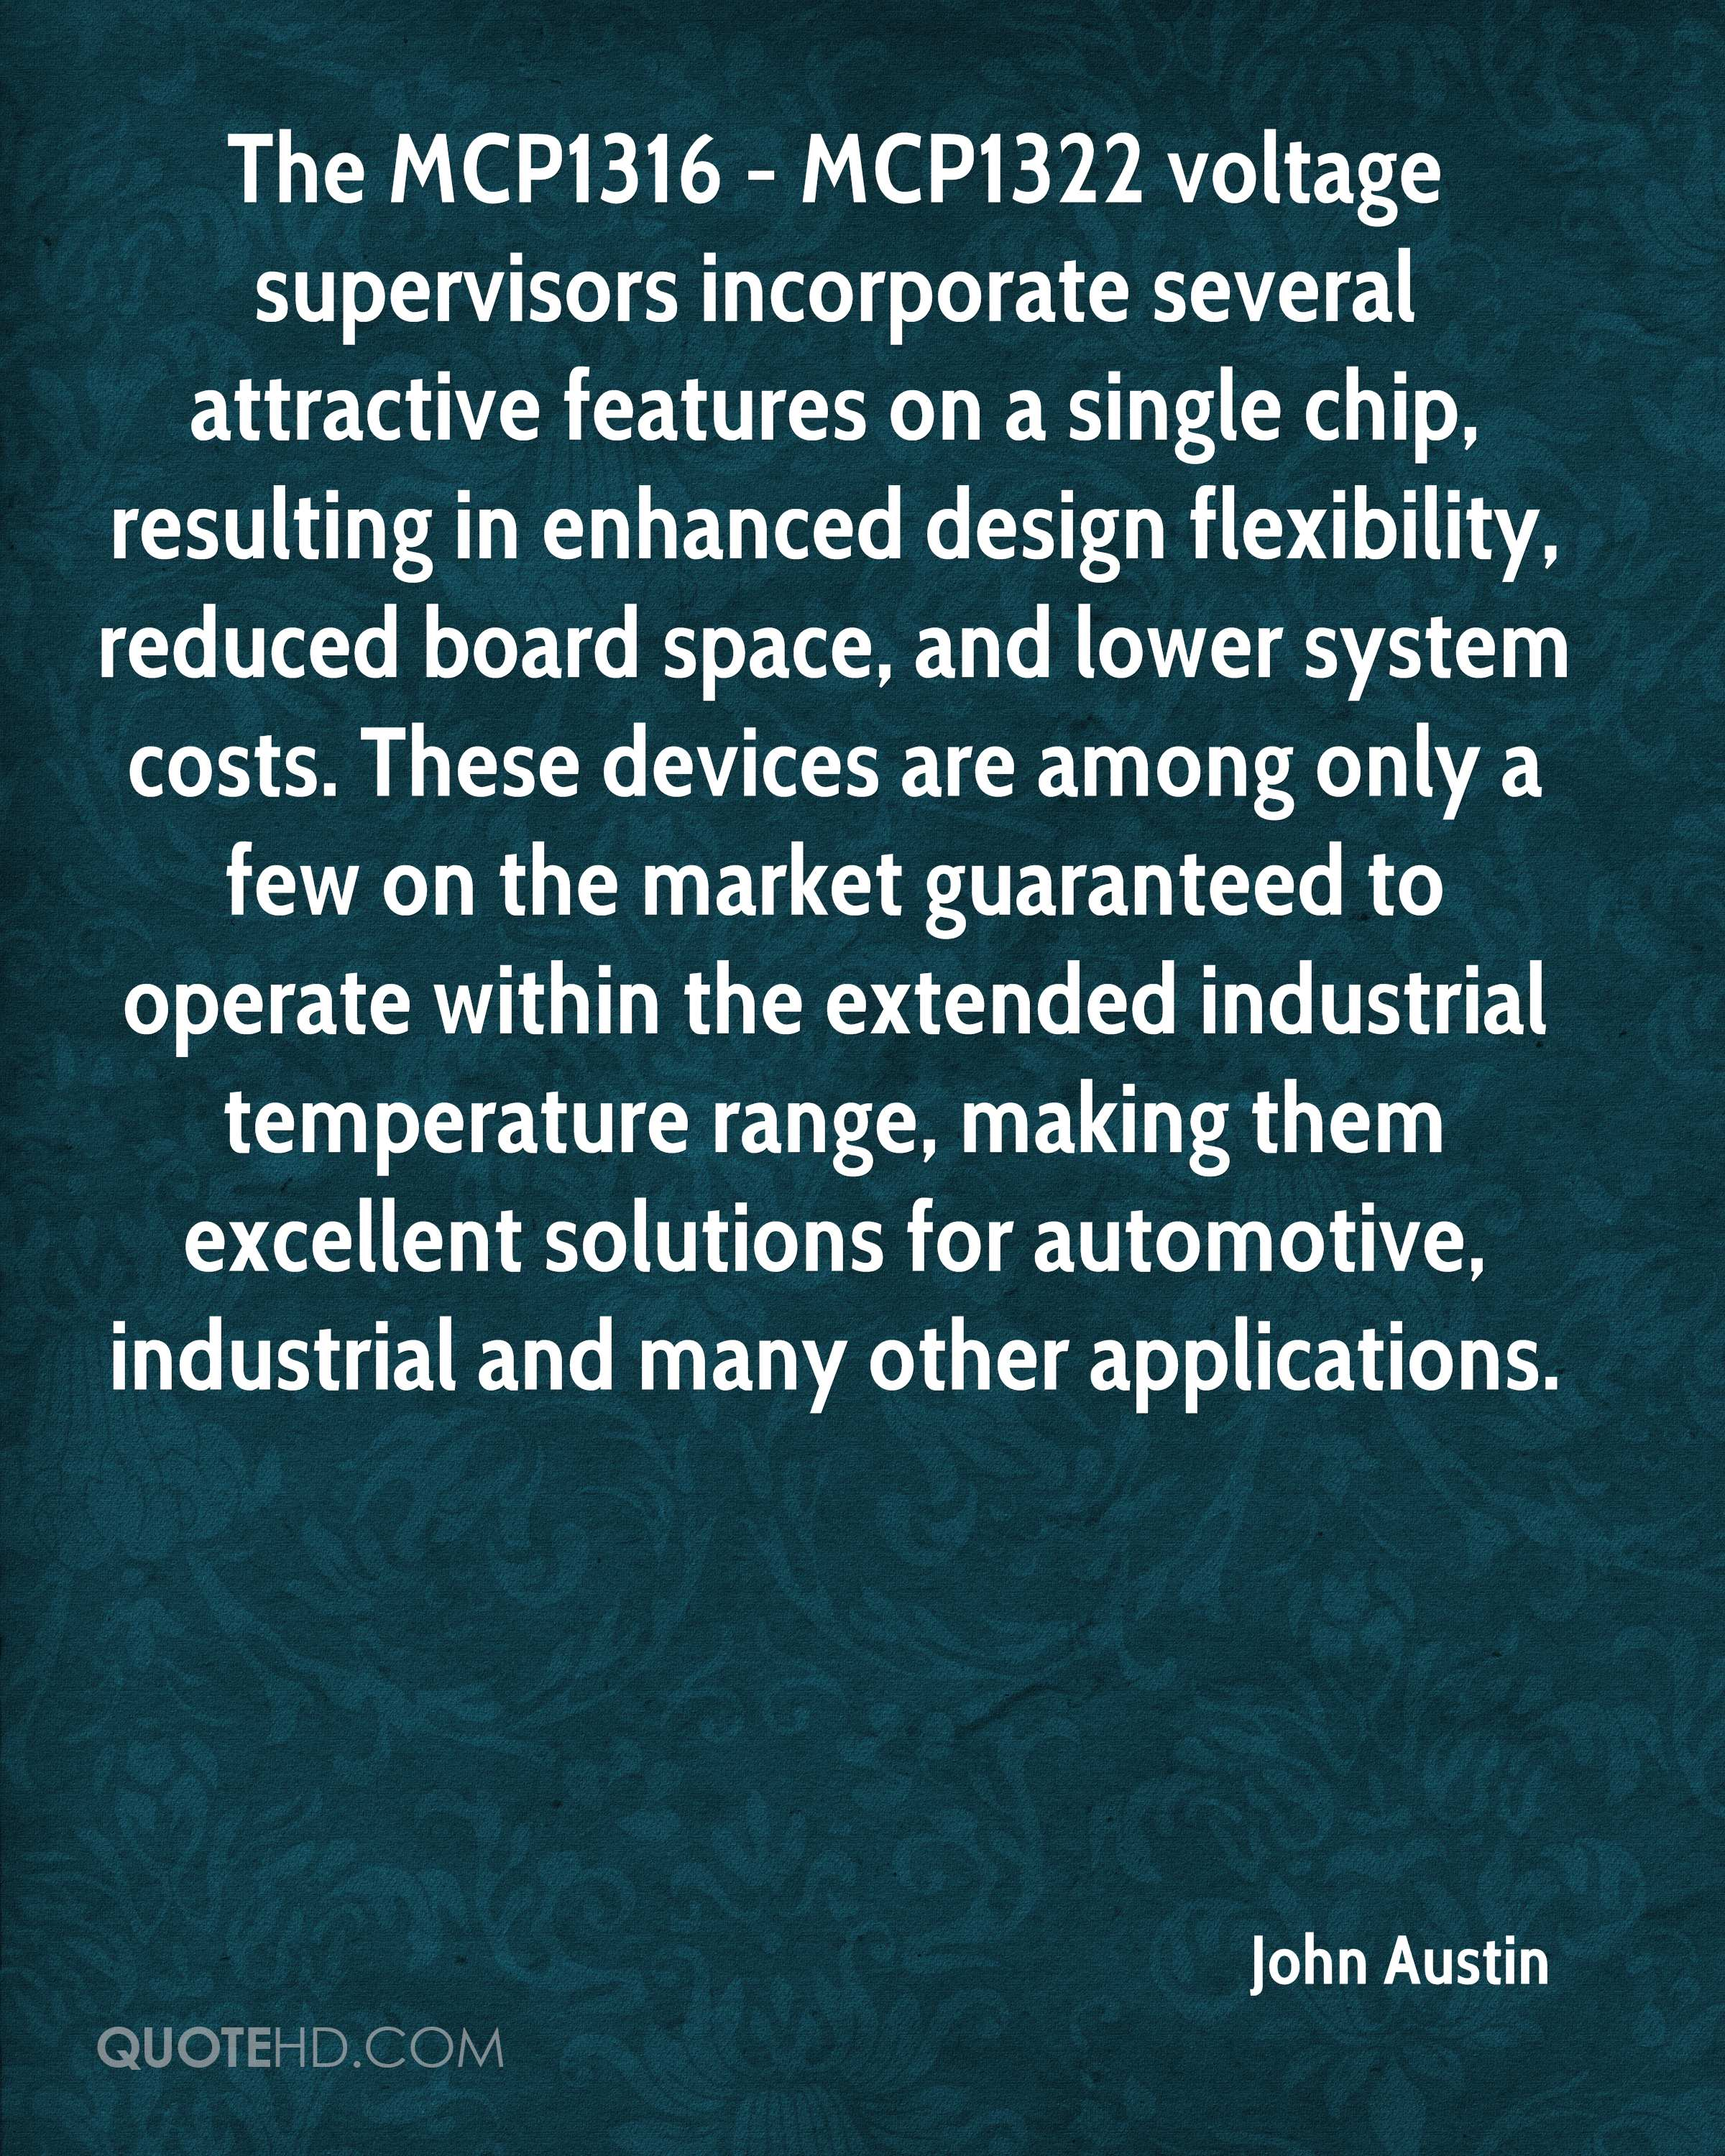 The MCP1316 - MCP1322 voltage supervisors incorporate several attractive features on a single chip, resulting in enhanced design flexibility, reduced board space, and lower system costs. These devices are among only a few on the market guaranteed to operate within the extended industrial temperature range, making them excellent solutions for automotive, industrial and many other applications.